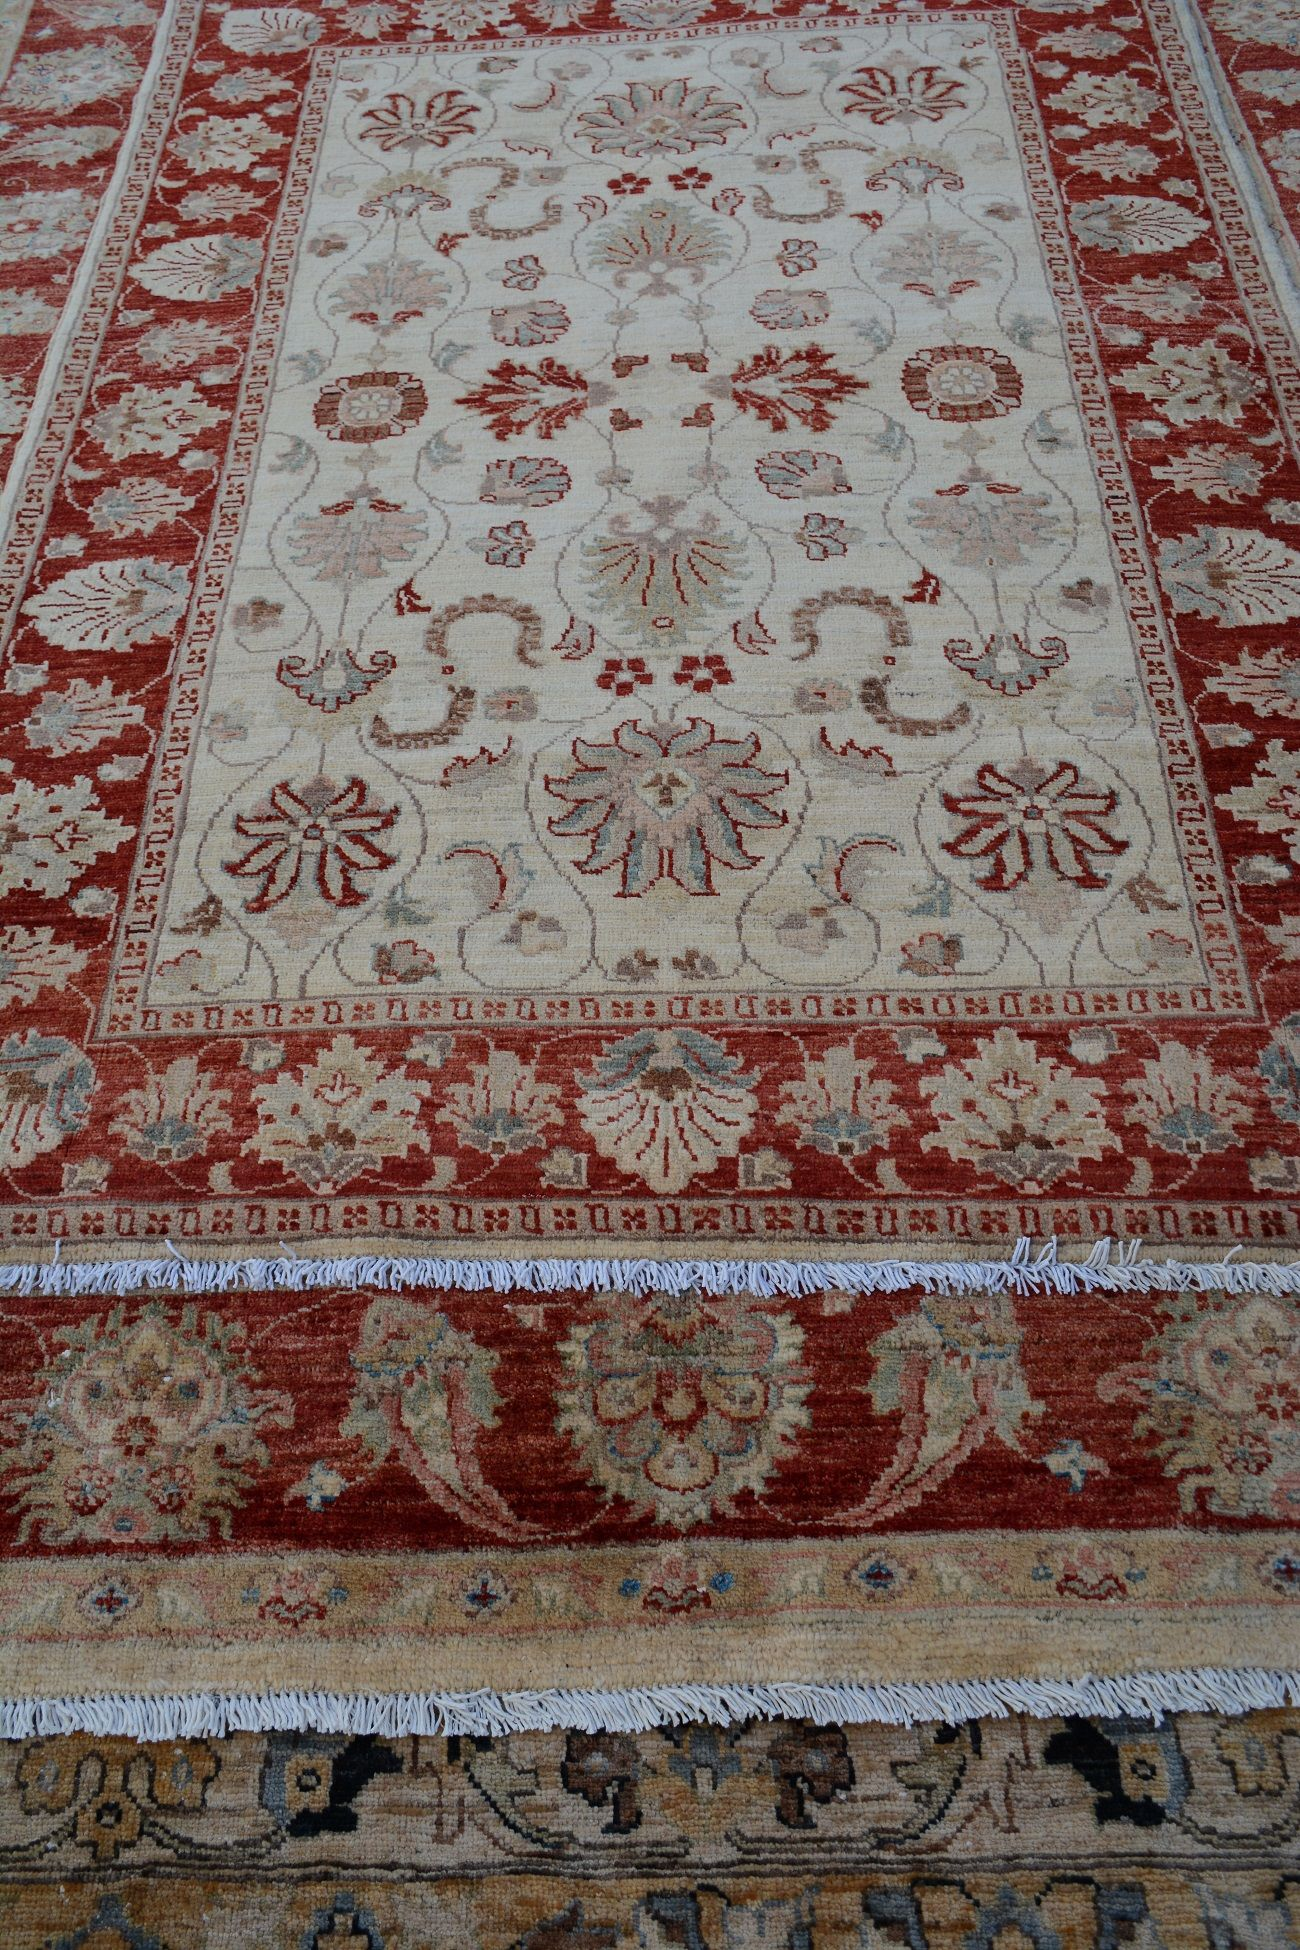 These Elegant Ziegler Design Chobi Or Chobrang Carpets Which Mean In Farsi Tree Like Are The Same Quality As Oushak Turkish Ca Rugs Handmade Rugs Afghan Rugs